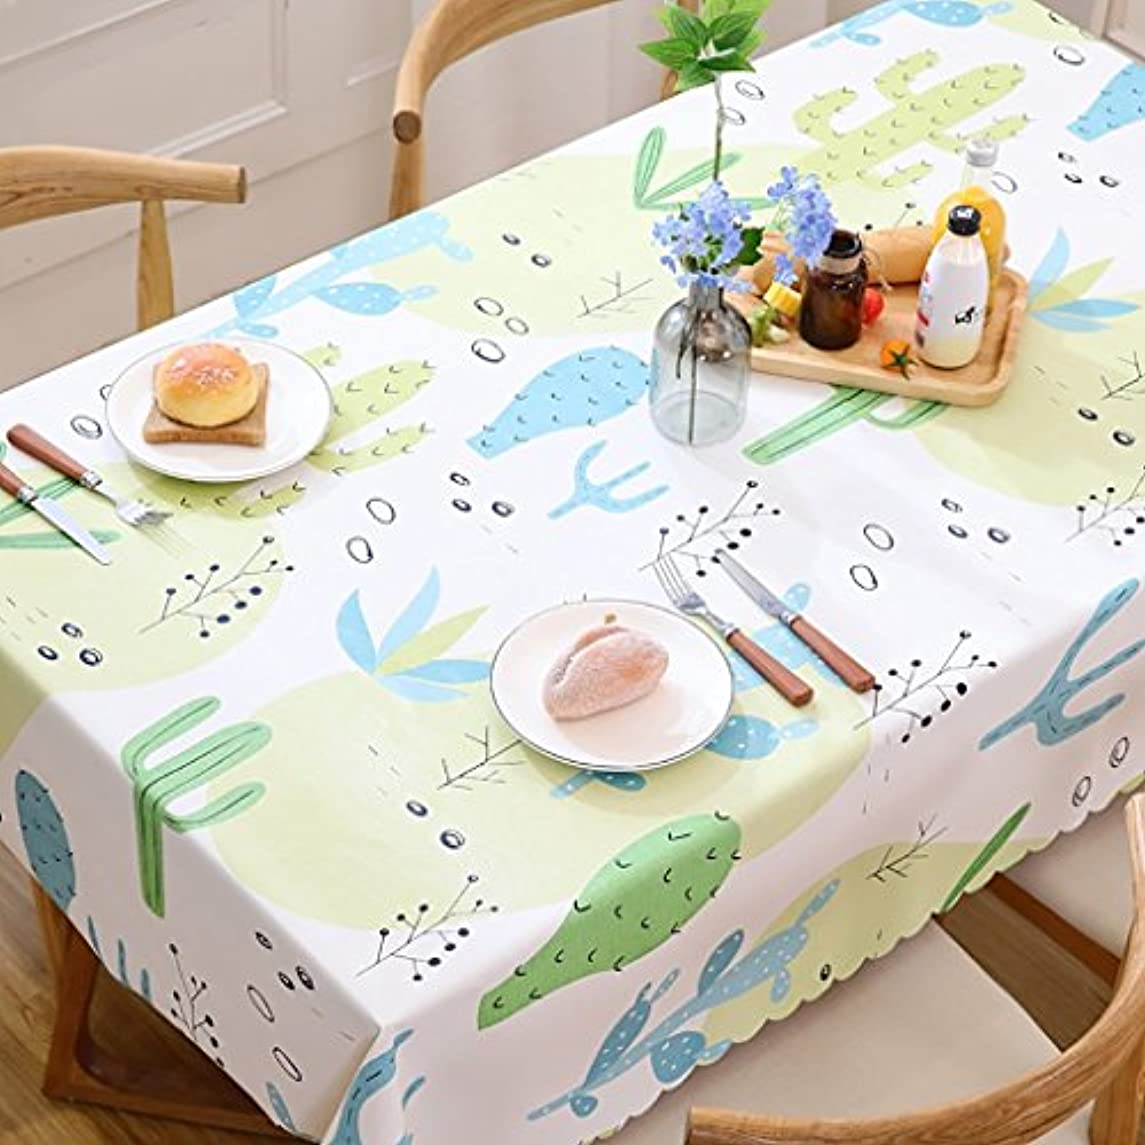 WENJUN Tablecloth Waterproof Oilproof Anti-hot Disposable Table Cloth Cotton Fabric Style PVC Tea Table Cover Tablecloth Household (Color : Style J, Size : 120170cm)